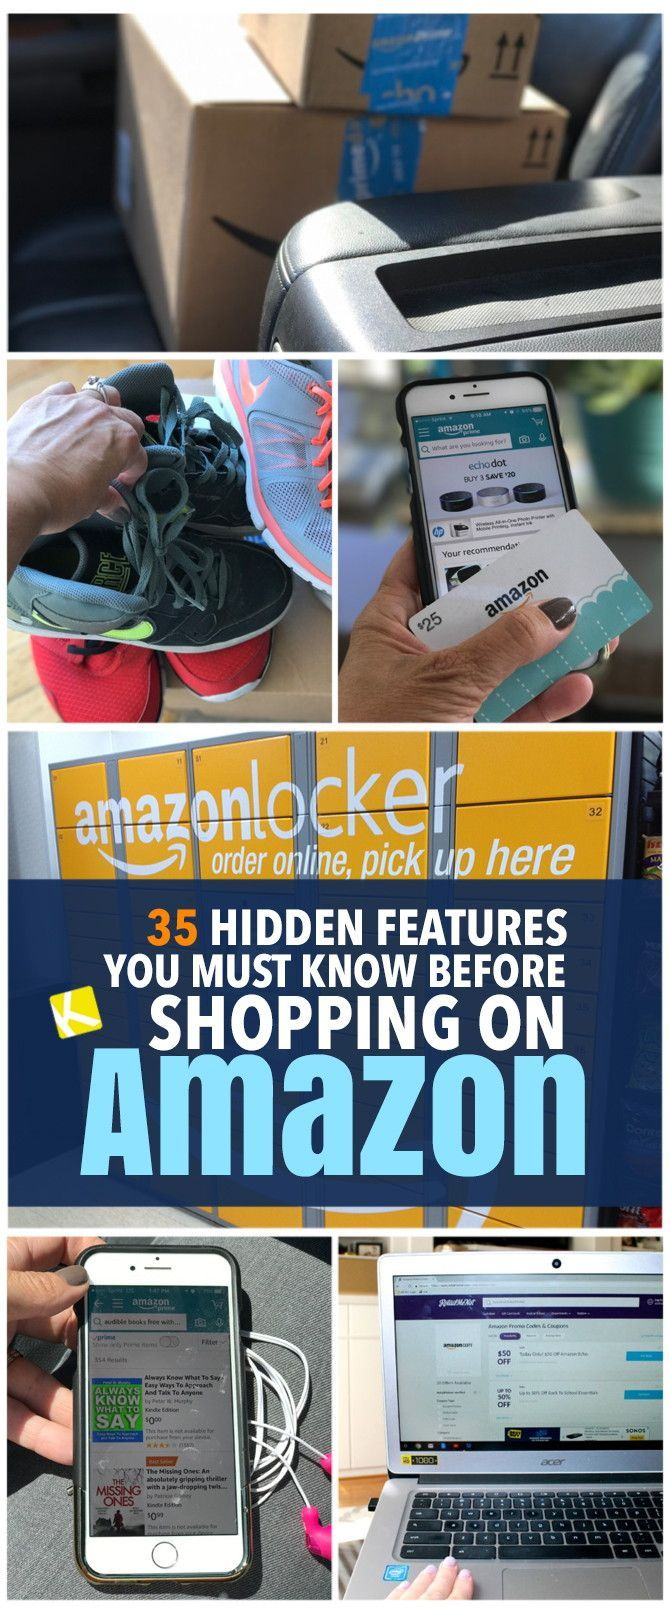 You probably consider yourself pretty familiar with Amazon, but I'm betting you don't know even half of these Amazon hacks.